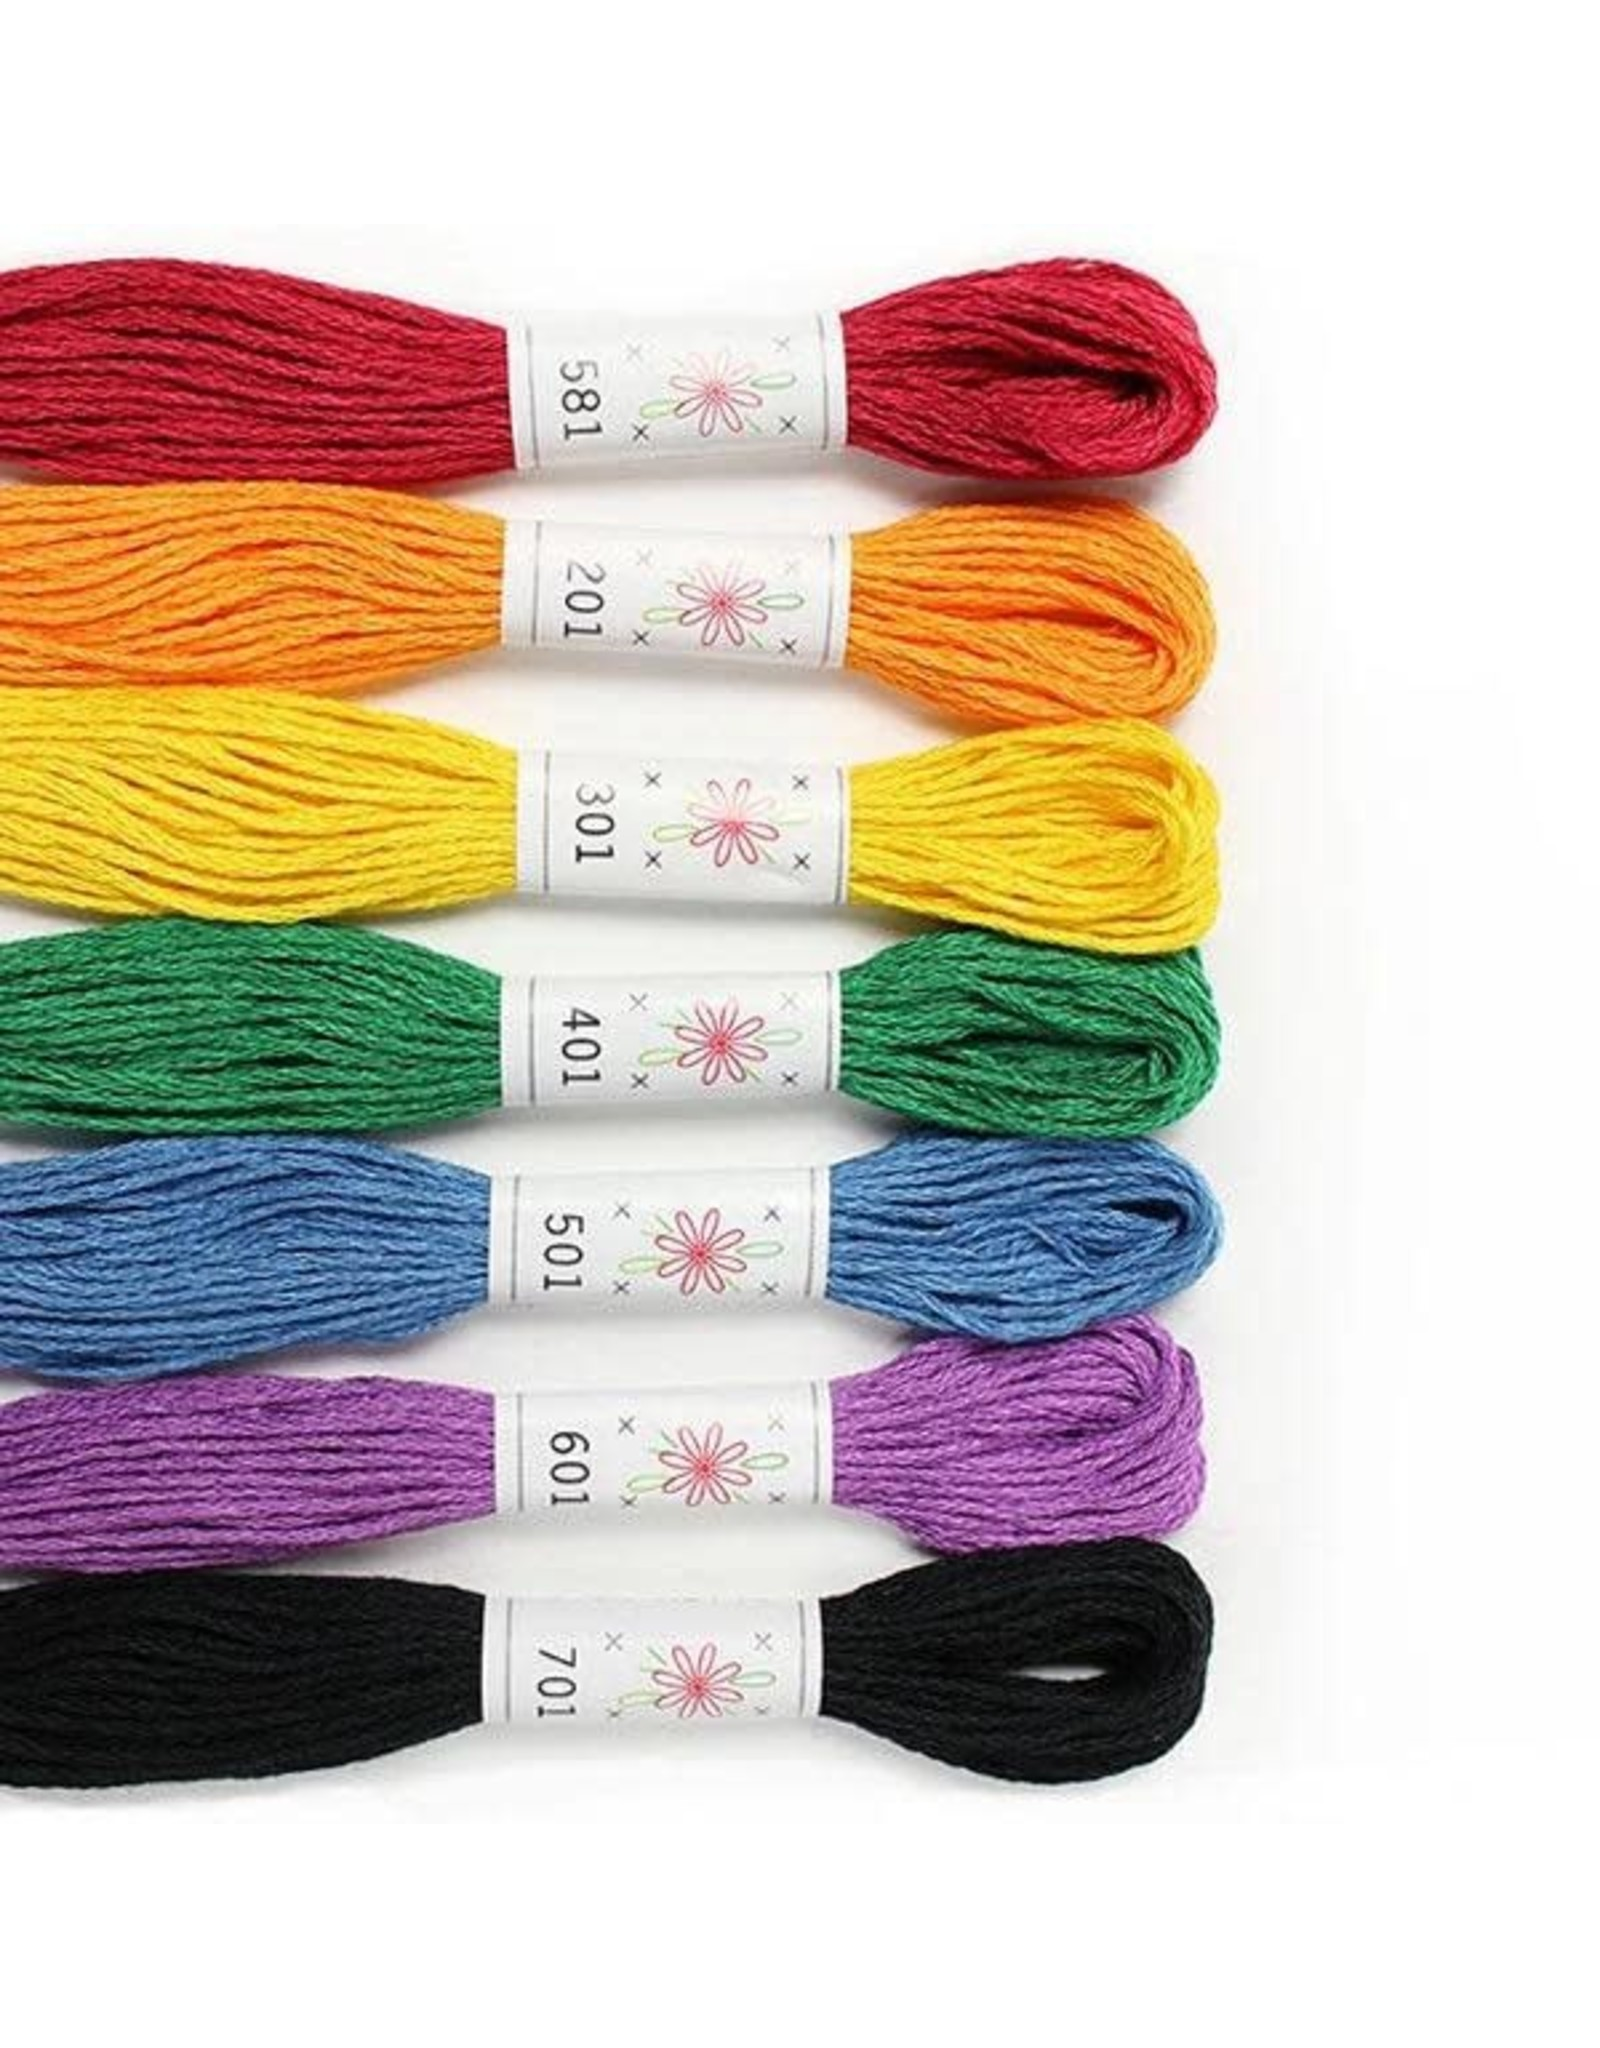 Sublime Stitching Embroidery Floss Set, Rainbow Palette - Seven 8.75 yard skeins, from Sublime Stitching